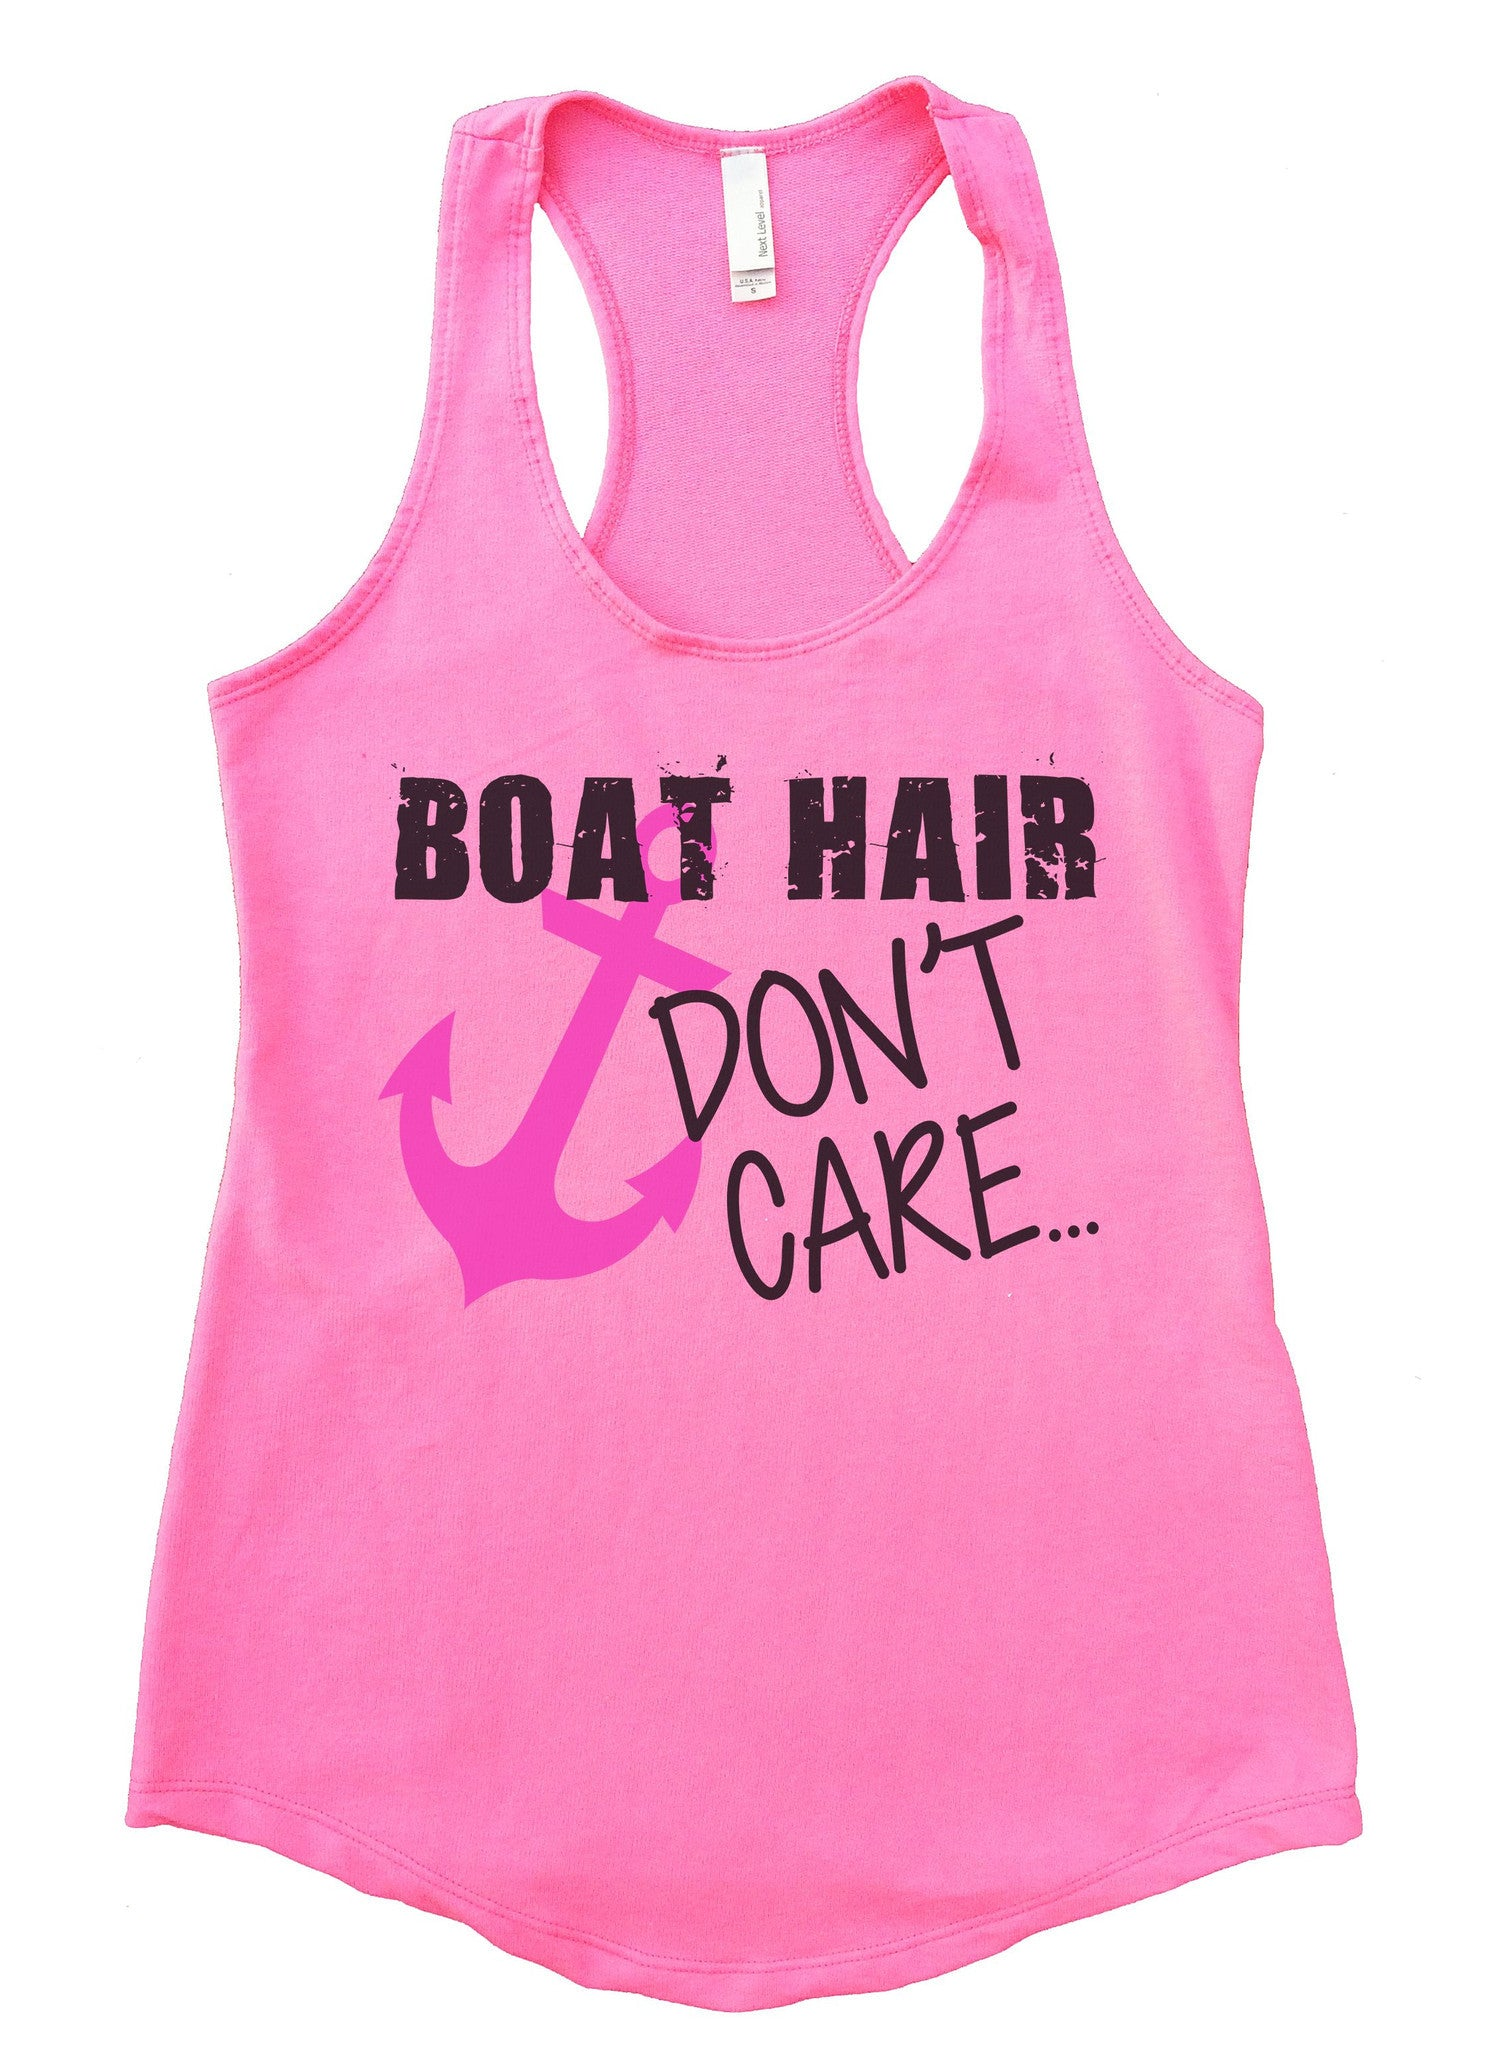 Boat Hair Don't Care Womens Workout Tank Top F691 - Funny Shirts Tank Tops Burnouts and Triblends  - 3